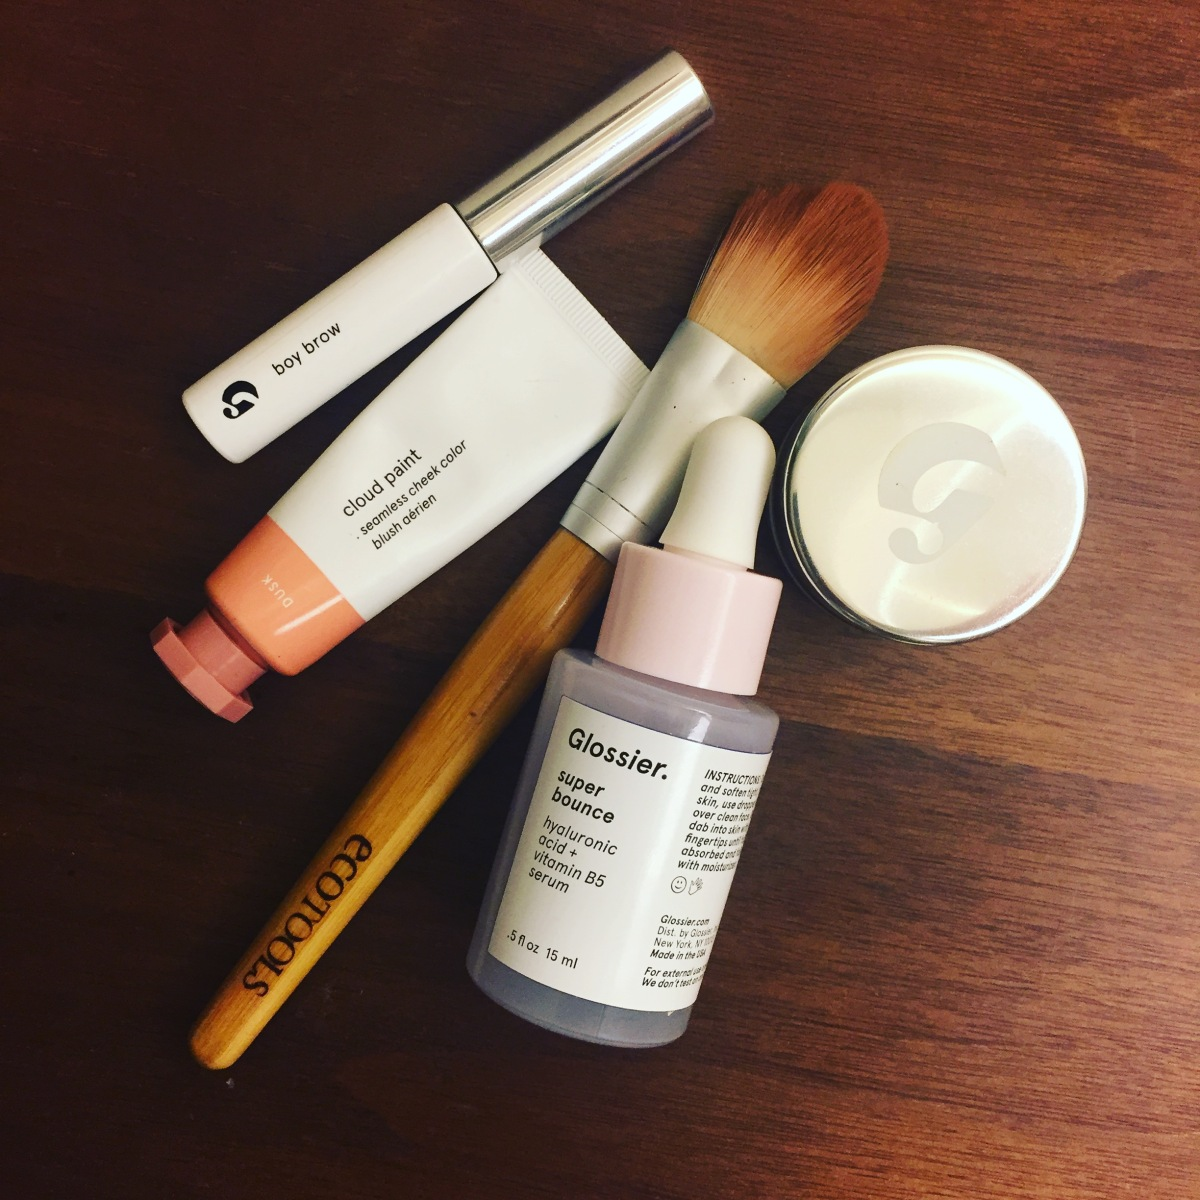 Let's Talk (More) About Glossier